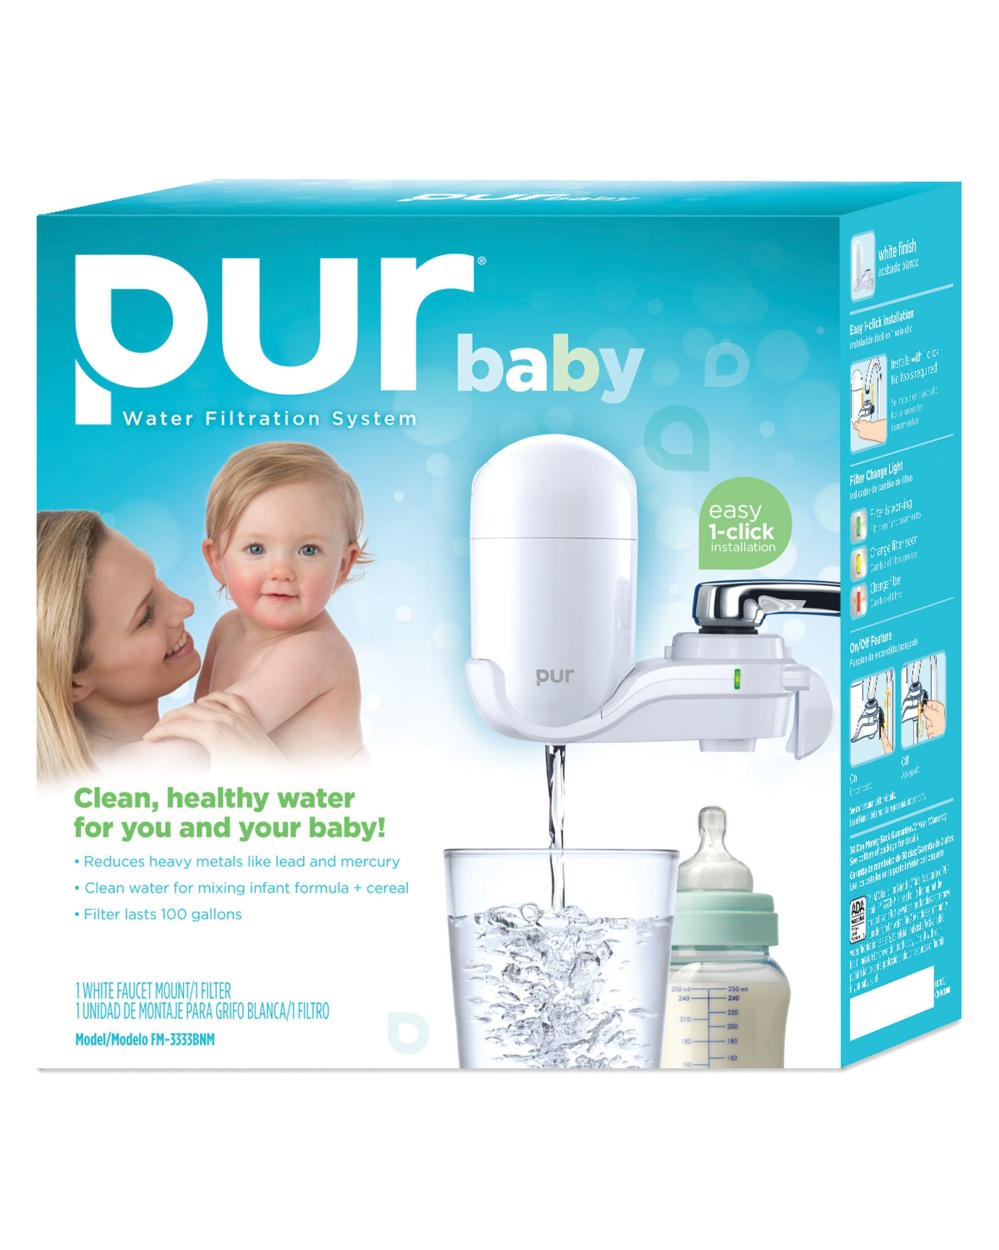 PUR BABY WATER FILTRATION SYSTEM